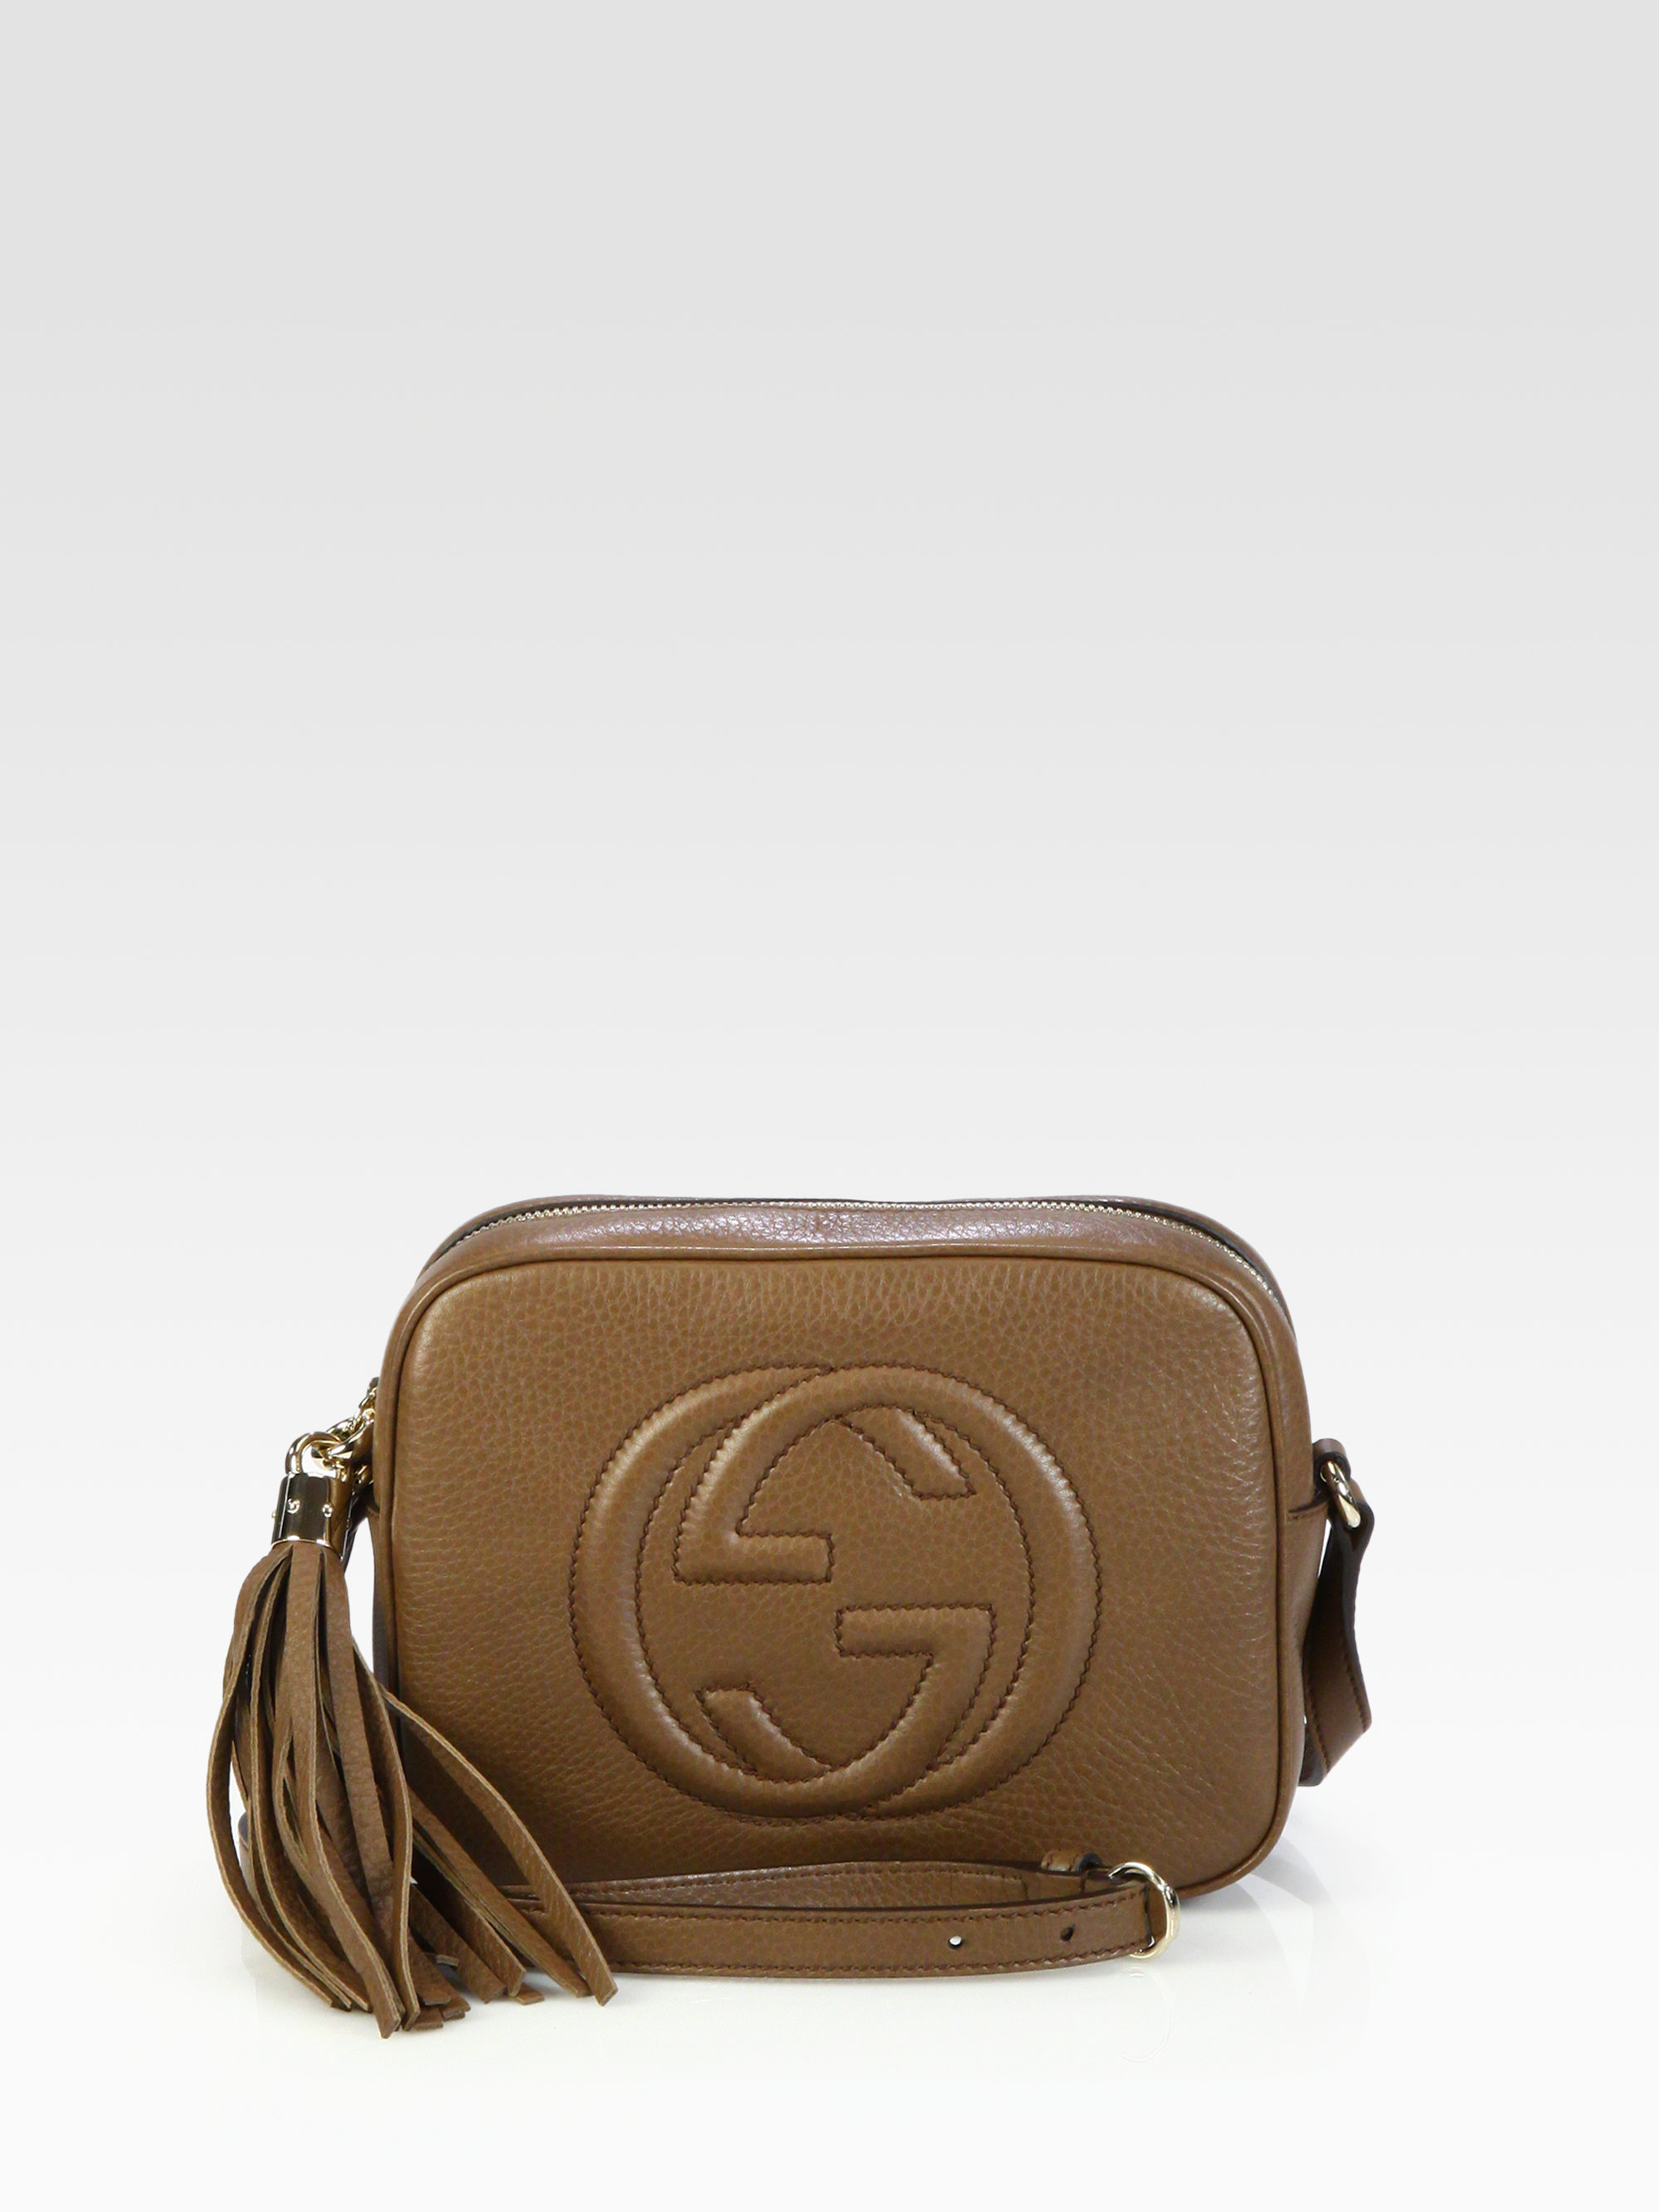 fe448b7cc53a Gallery. Previously sold at  Saks Fifth Avenue · Women s Gucci Soho Bag